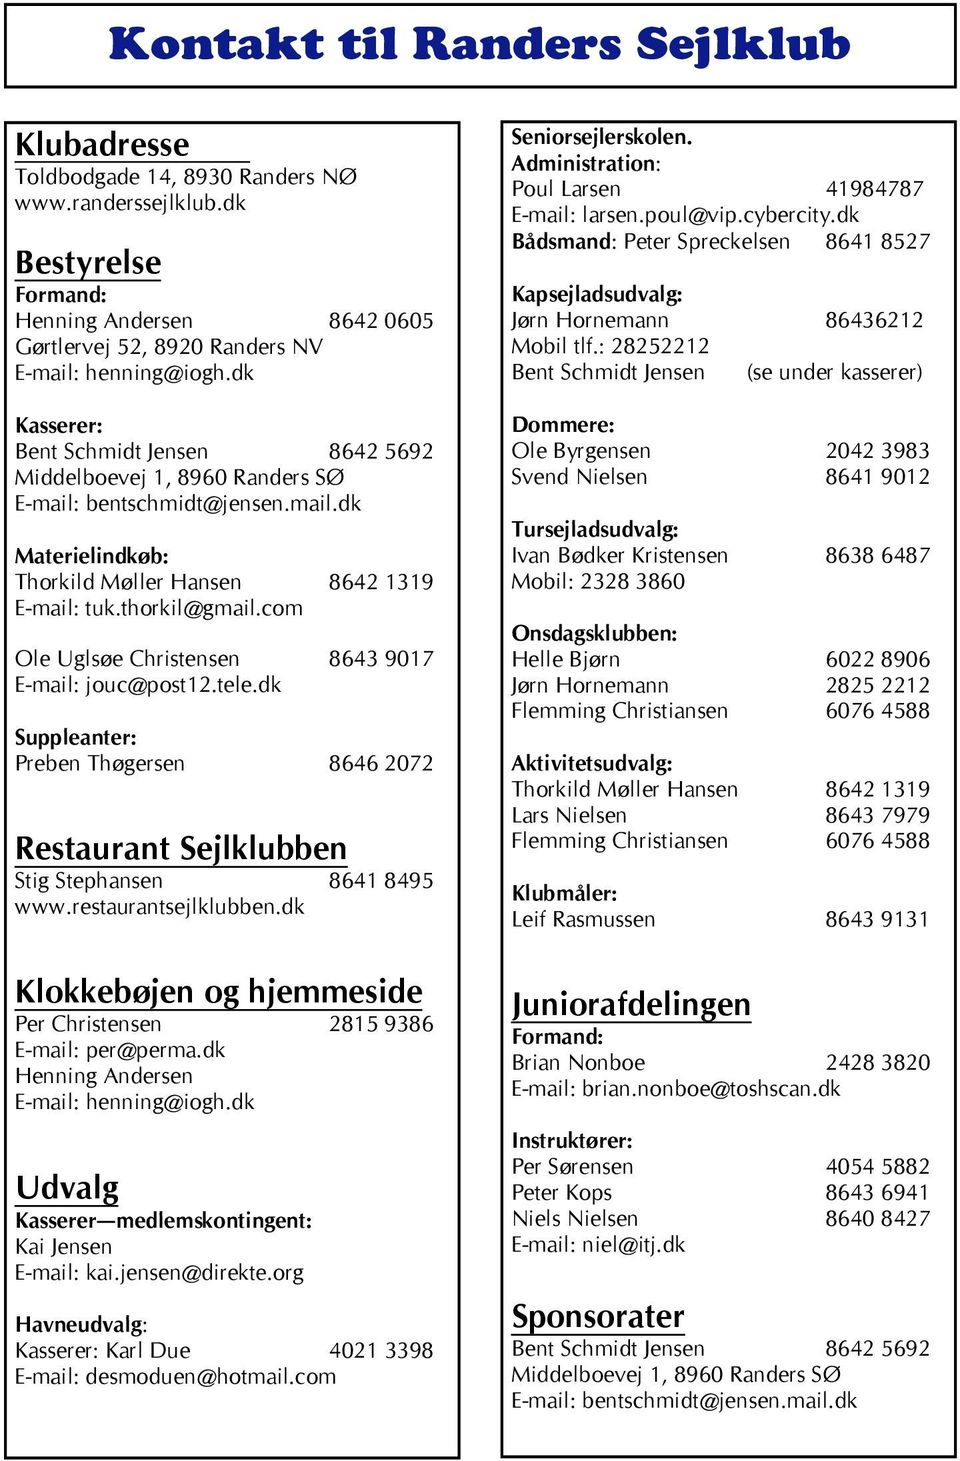 com Ole Uglsøe Christensen 8643 9017 E-mail: jouc@post12.tele.dk Suppleanter: Preben Thøgersen 8646 2072 Restaurant Sejlklubben Stig Stephansen 8641 8495 www.restaurantsejlklubben.